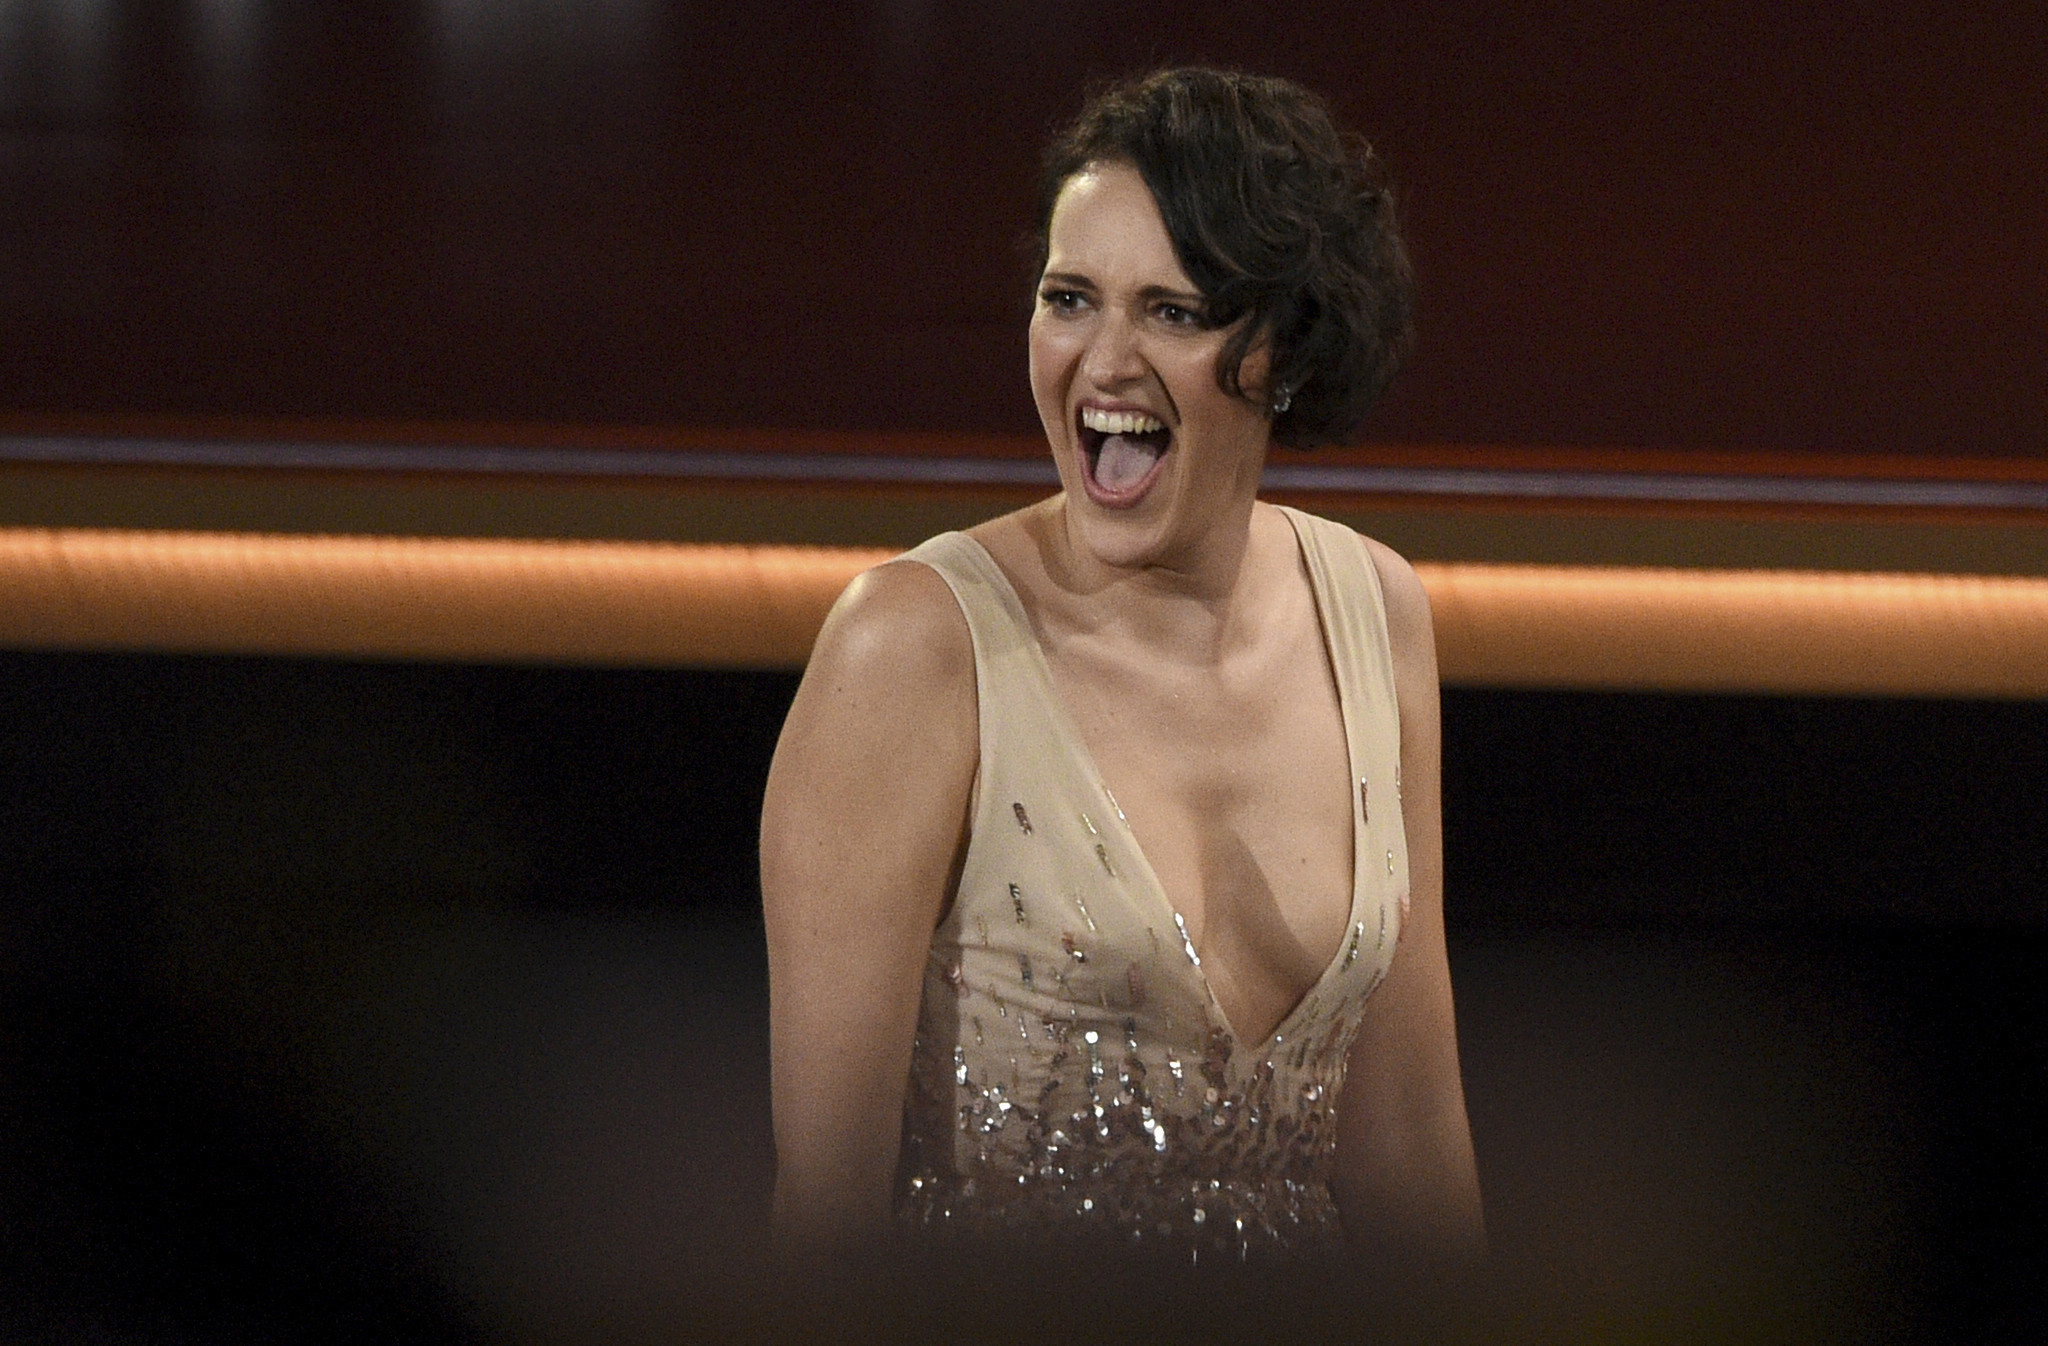 'Fleabag' earns surprise wins at Emmys, 'Game of Thrones' wraps show with drama award